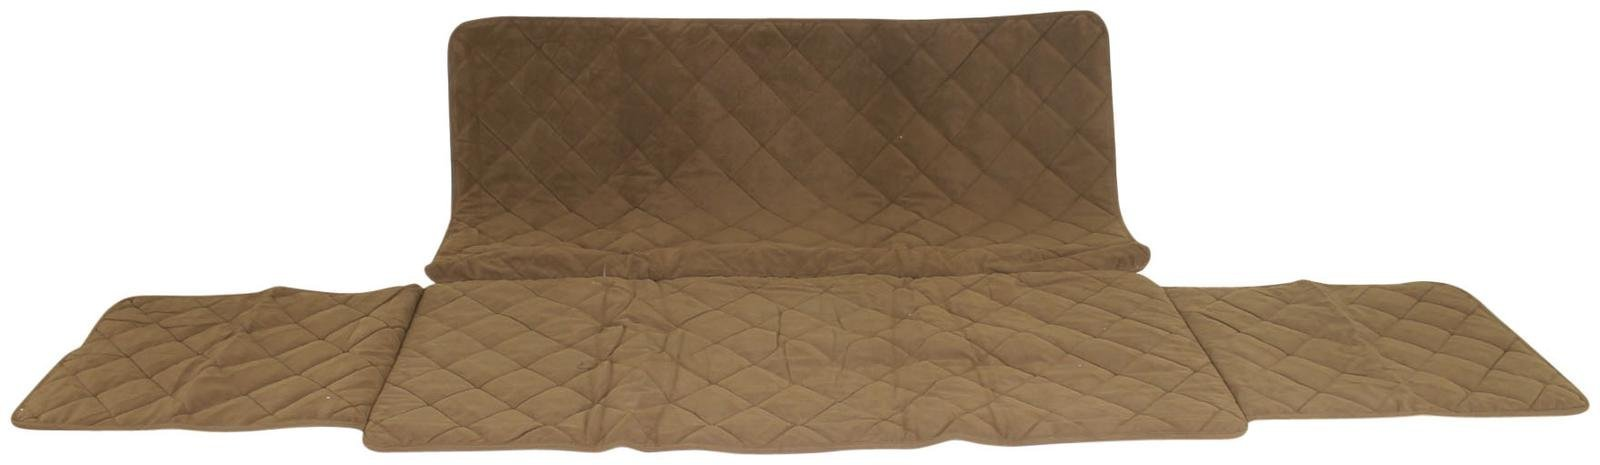 CPC Diamond Quilted Couch Protector, 60-Inch, Chocolate